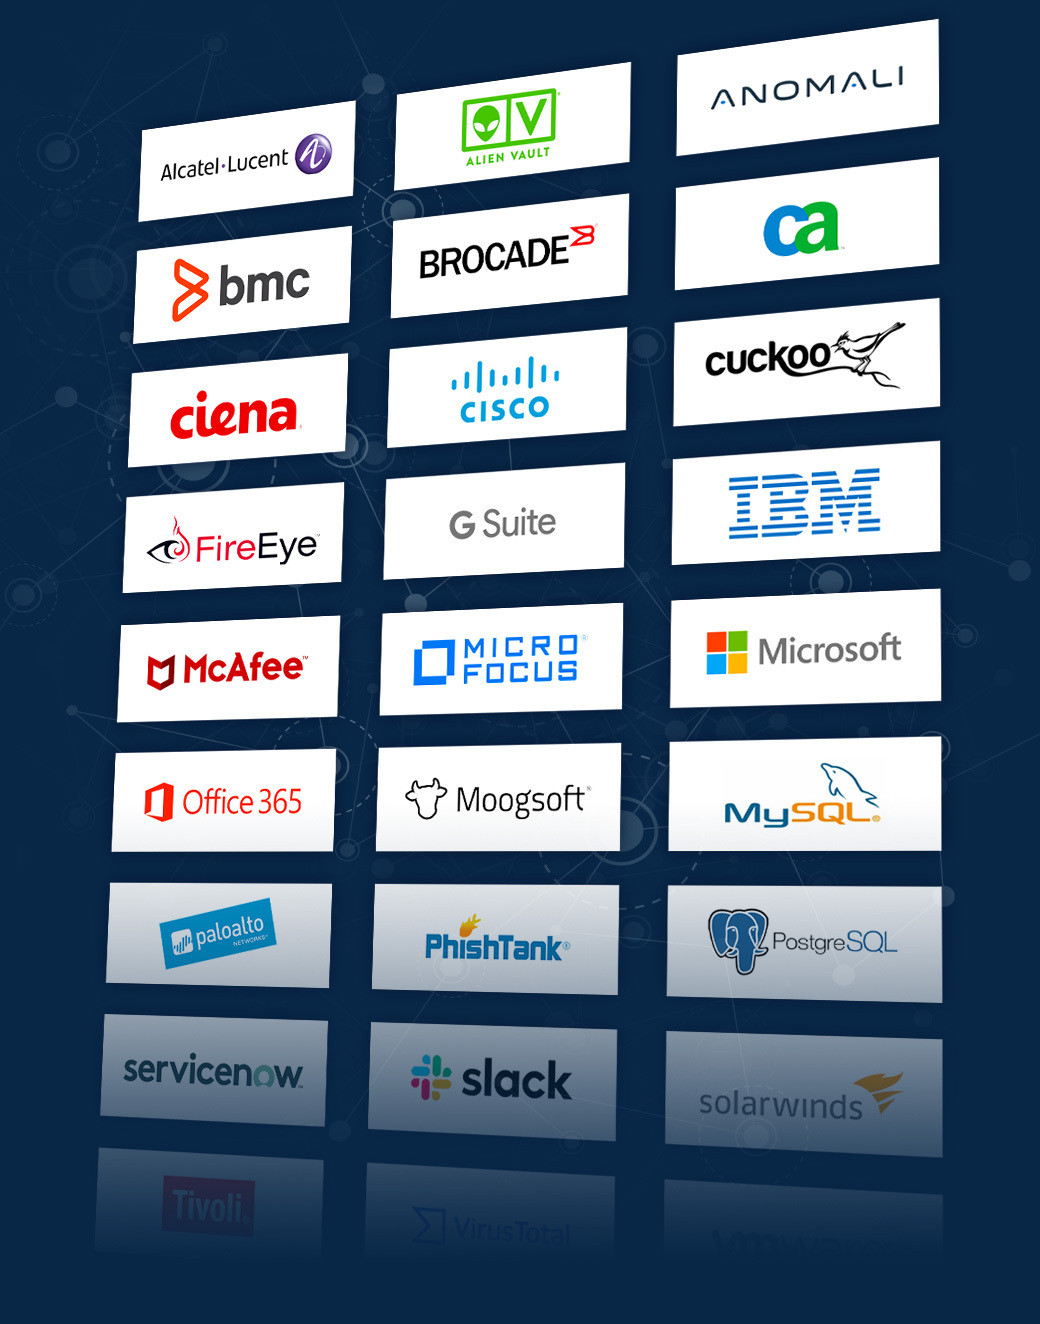 IT Automation + Orchestration Platform for ITOps, NetOps